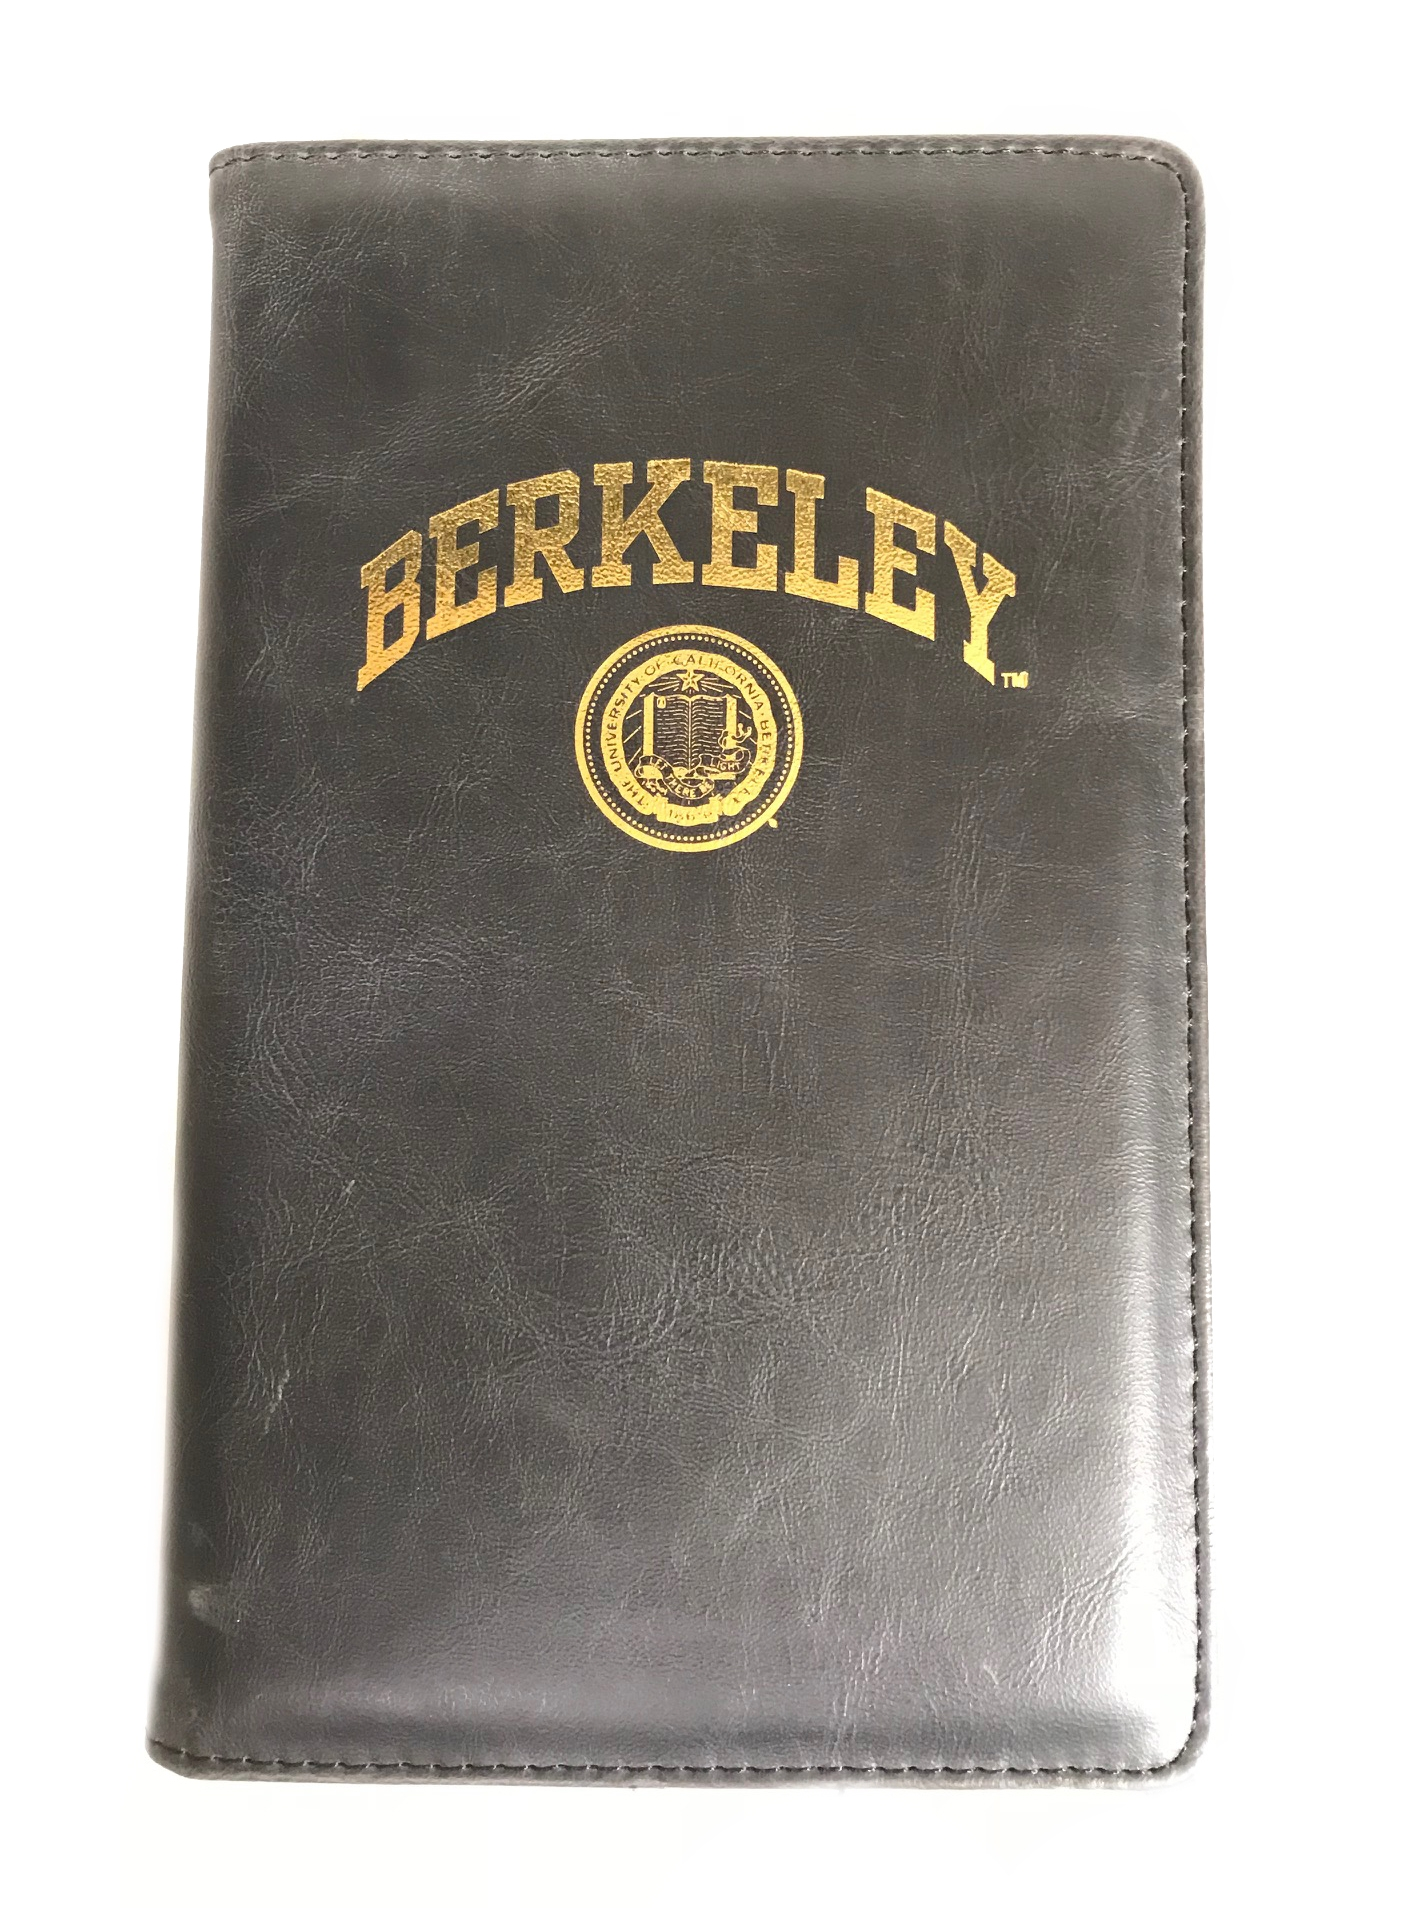 Vintage Soft Cover Notebook Journal Seal Logo